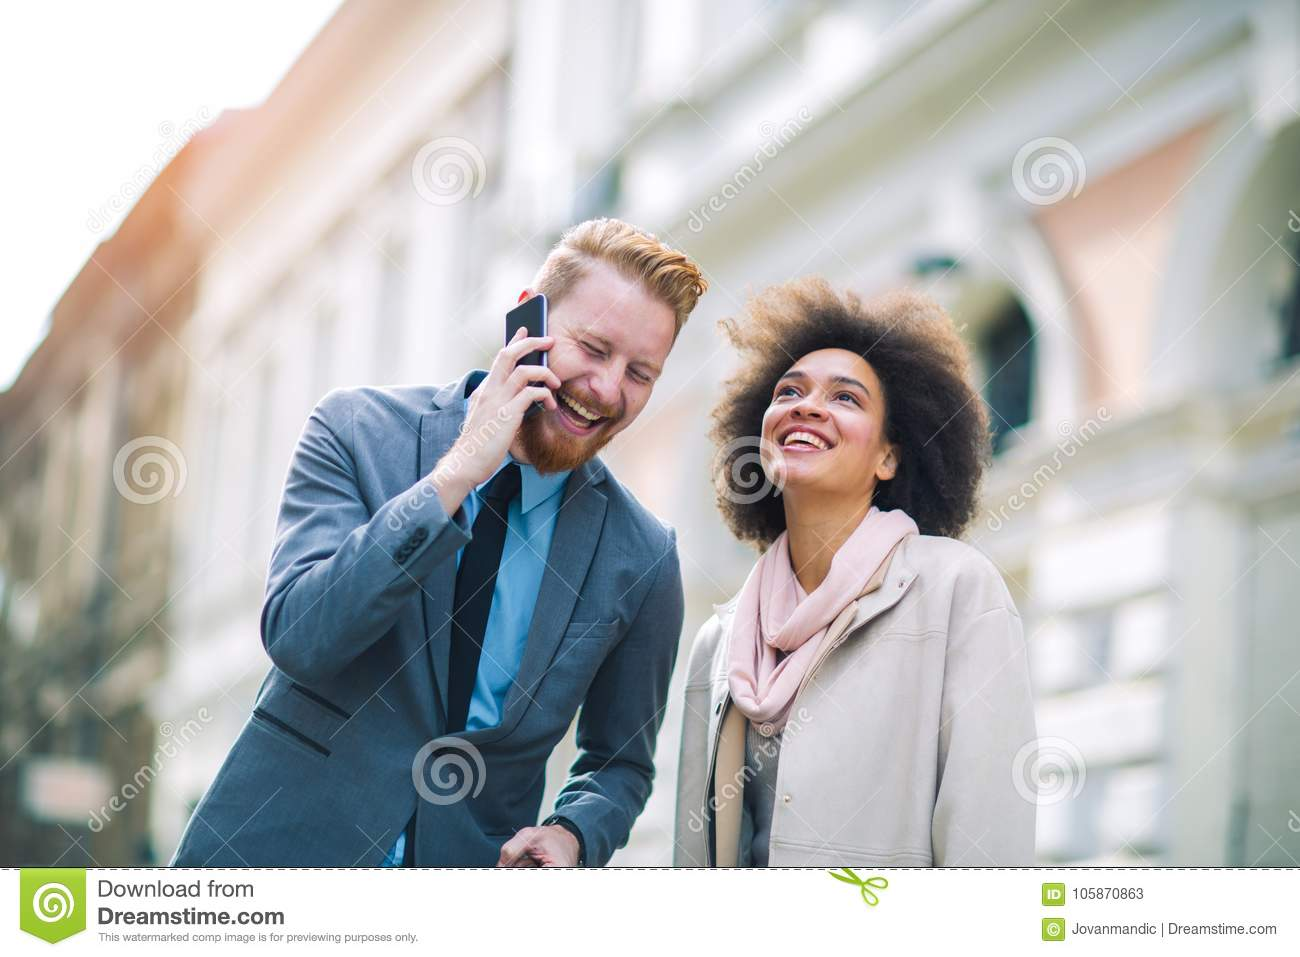 Two business people in an informal conversation